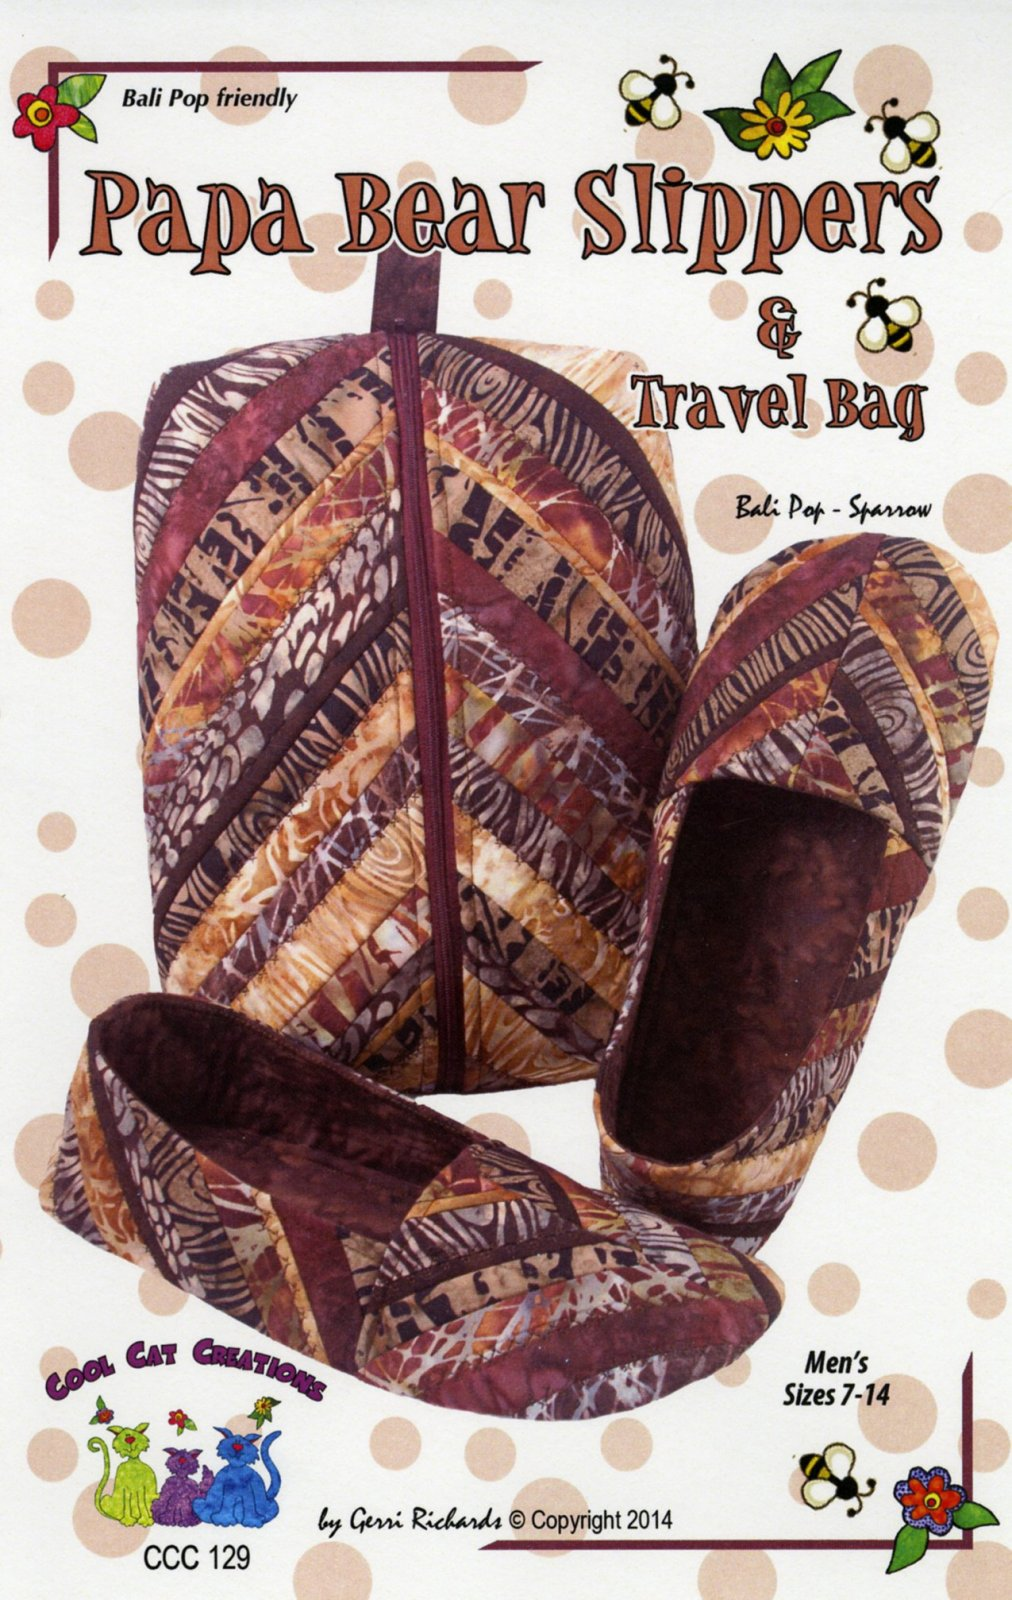 Papa Bear Slippers & Travel Bag